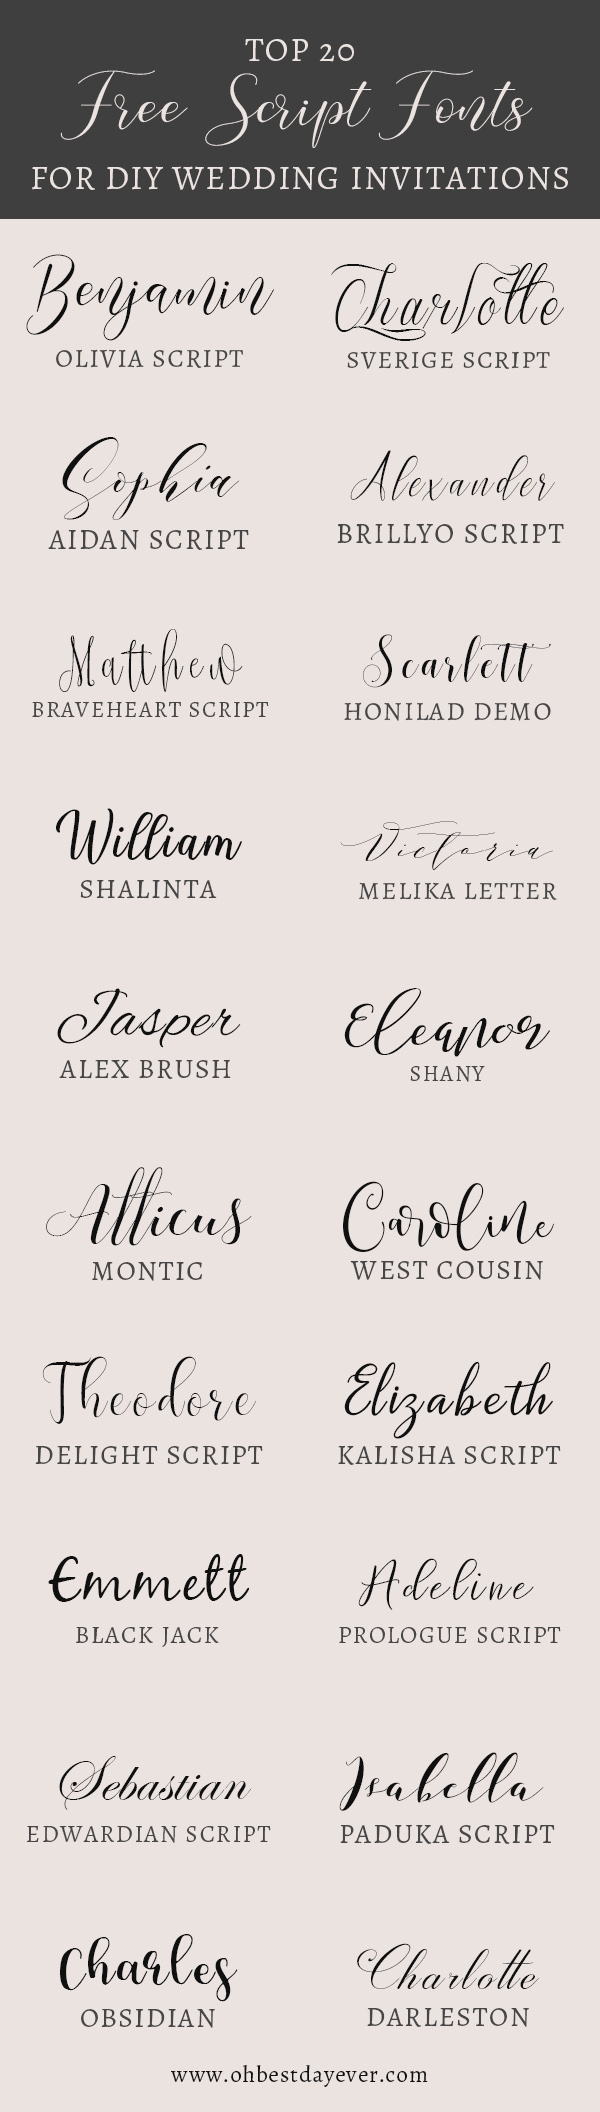 Wedding Invitation Fonts.Wedding Invitation Fonts Archives Oh Best Day Ever